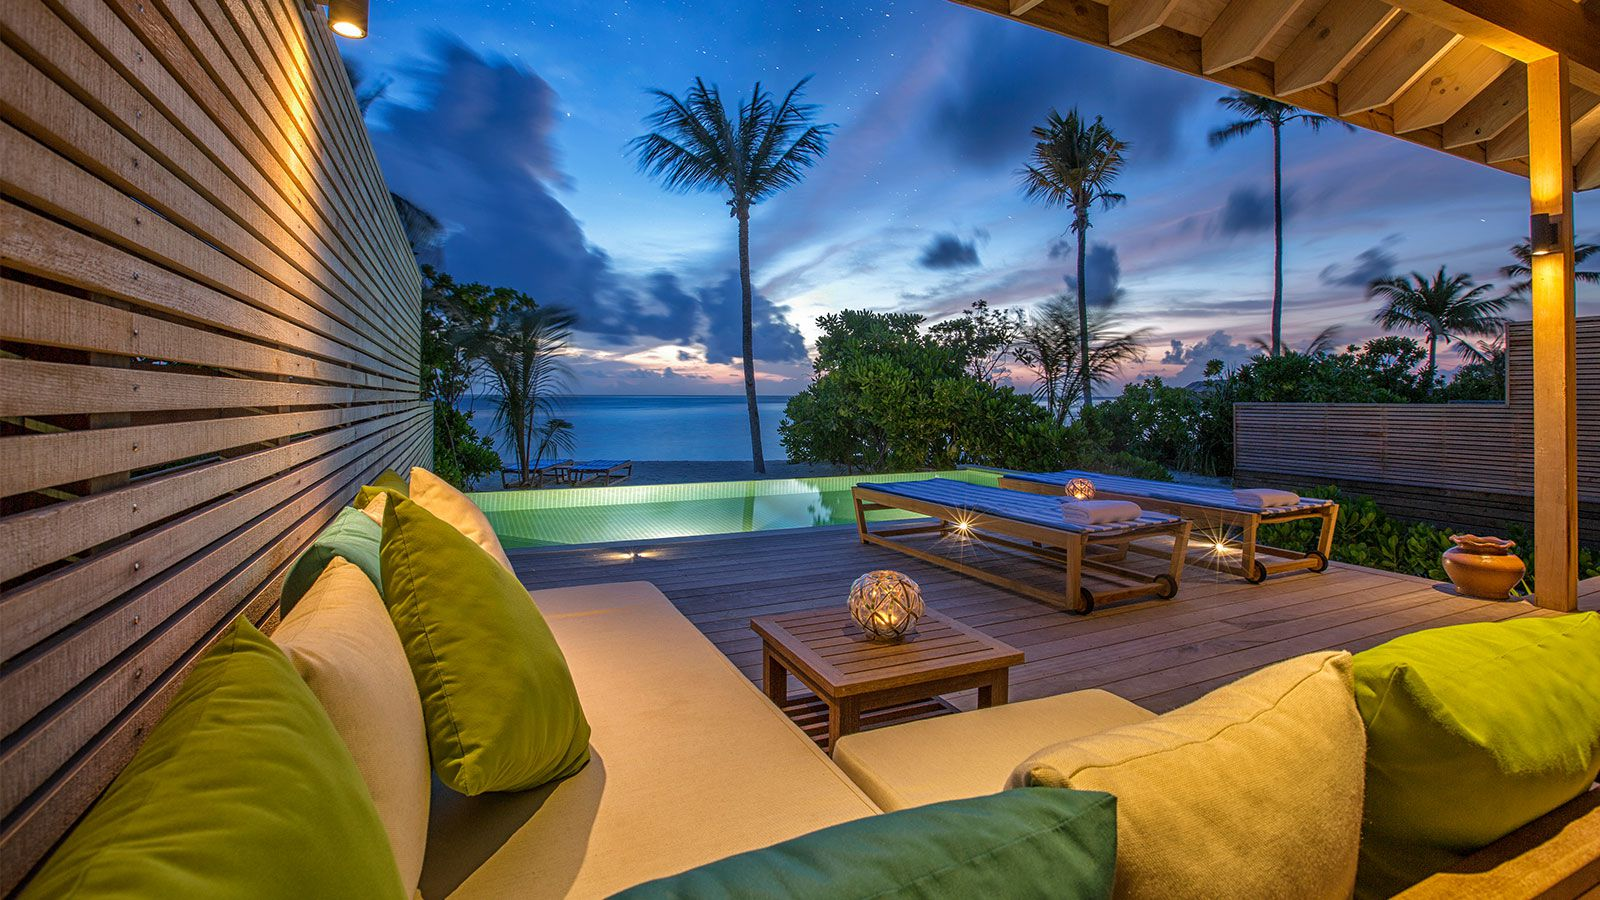 Maldives luxury all inclusive resort adults only luxury for Luxury all inclusive resorts adults only